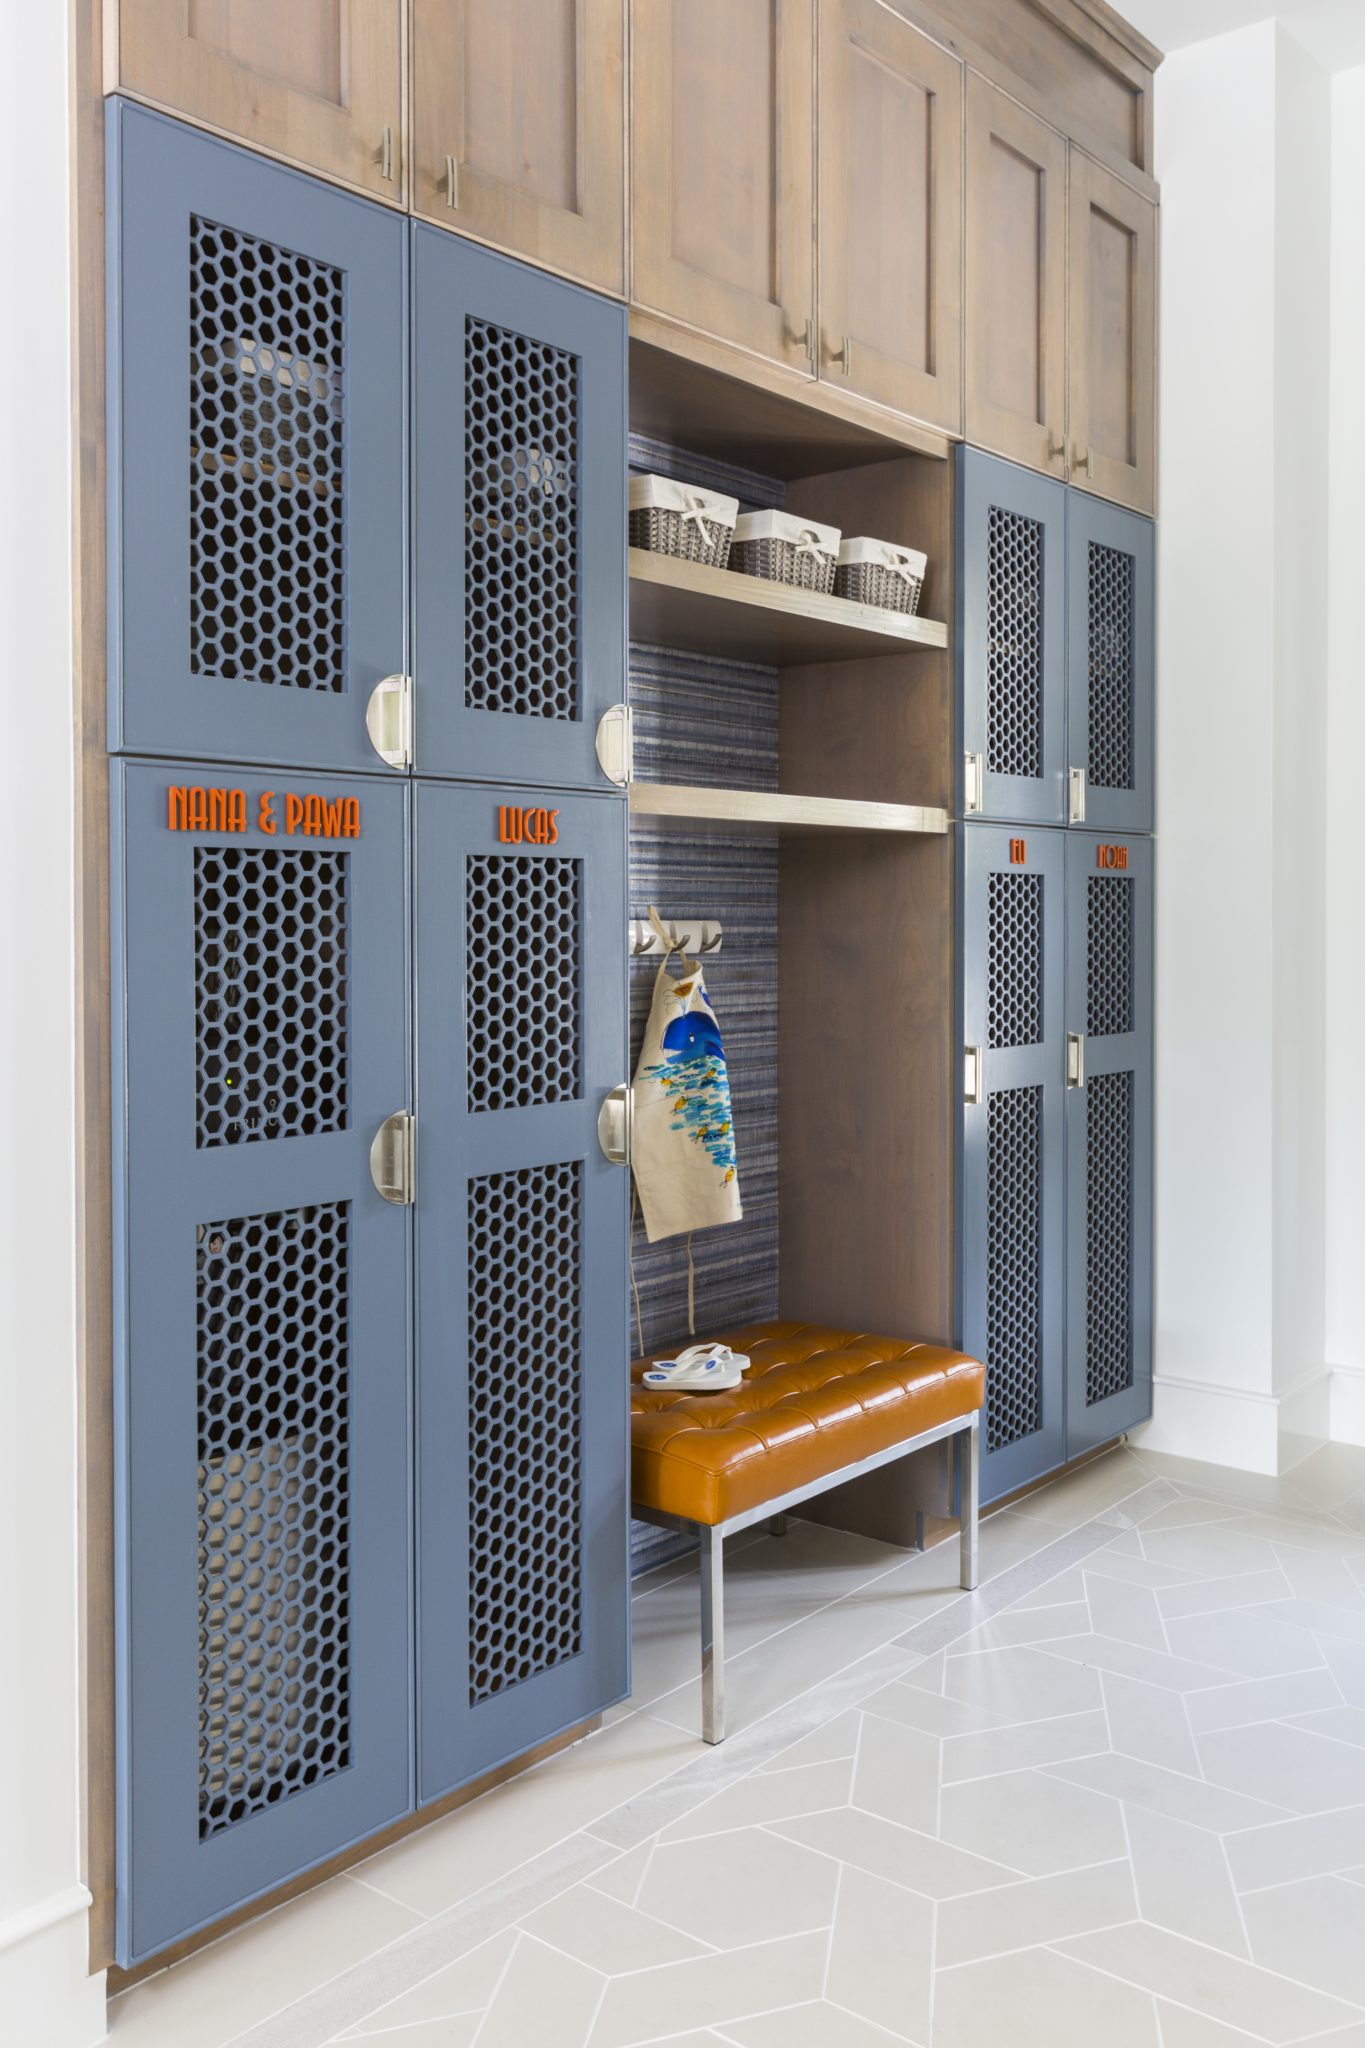 Family mudroom with customized lockers in a contemporary home design by Laura U, Inc.